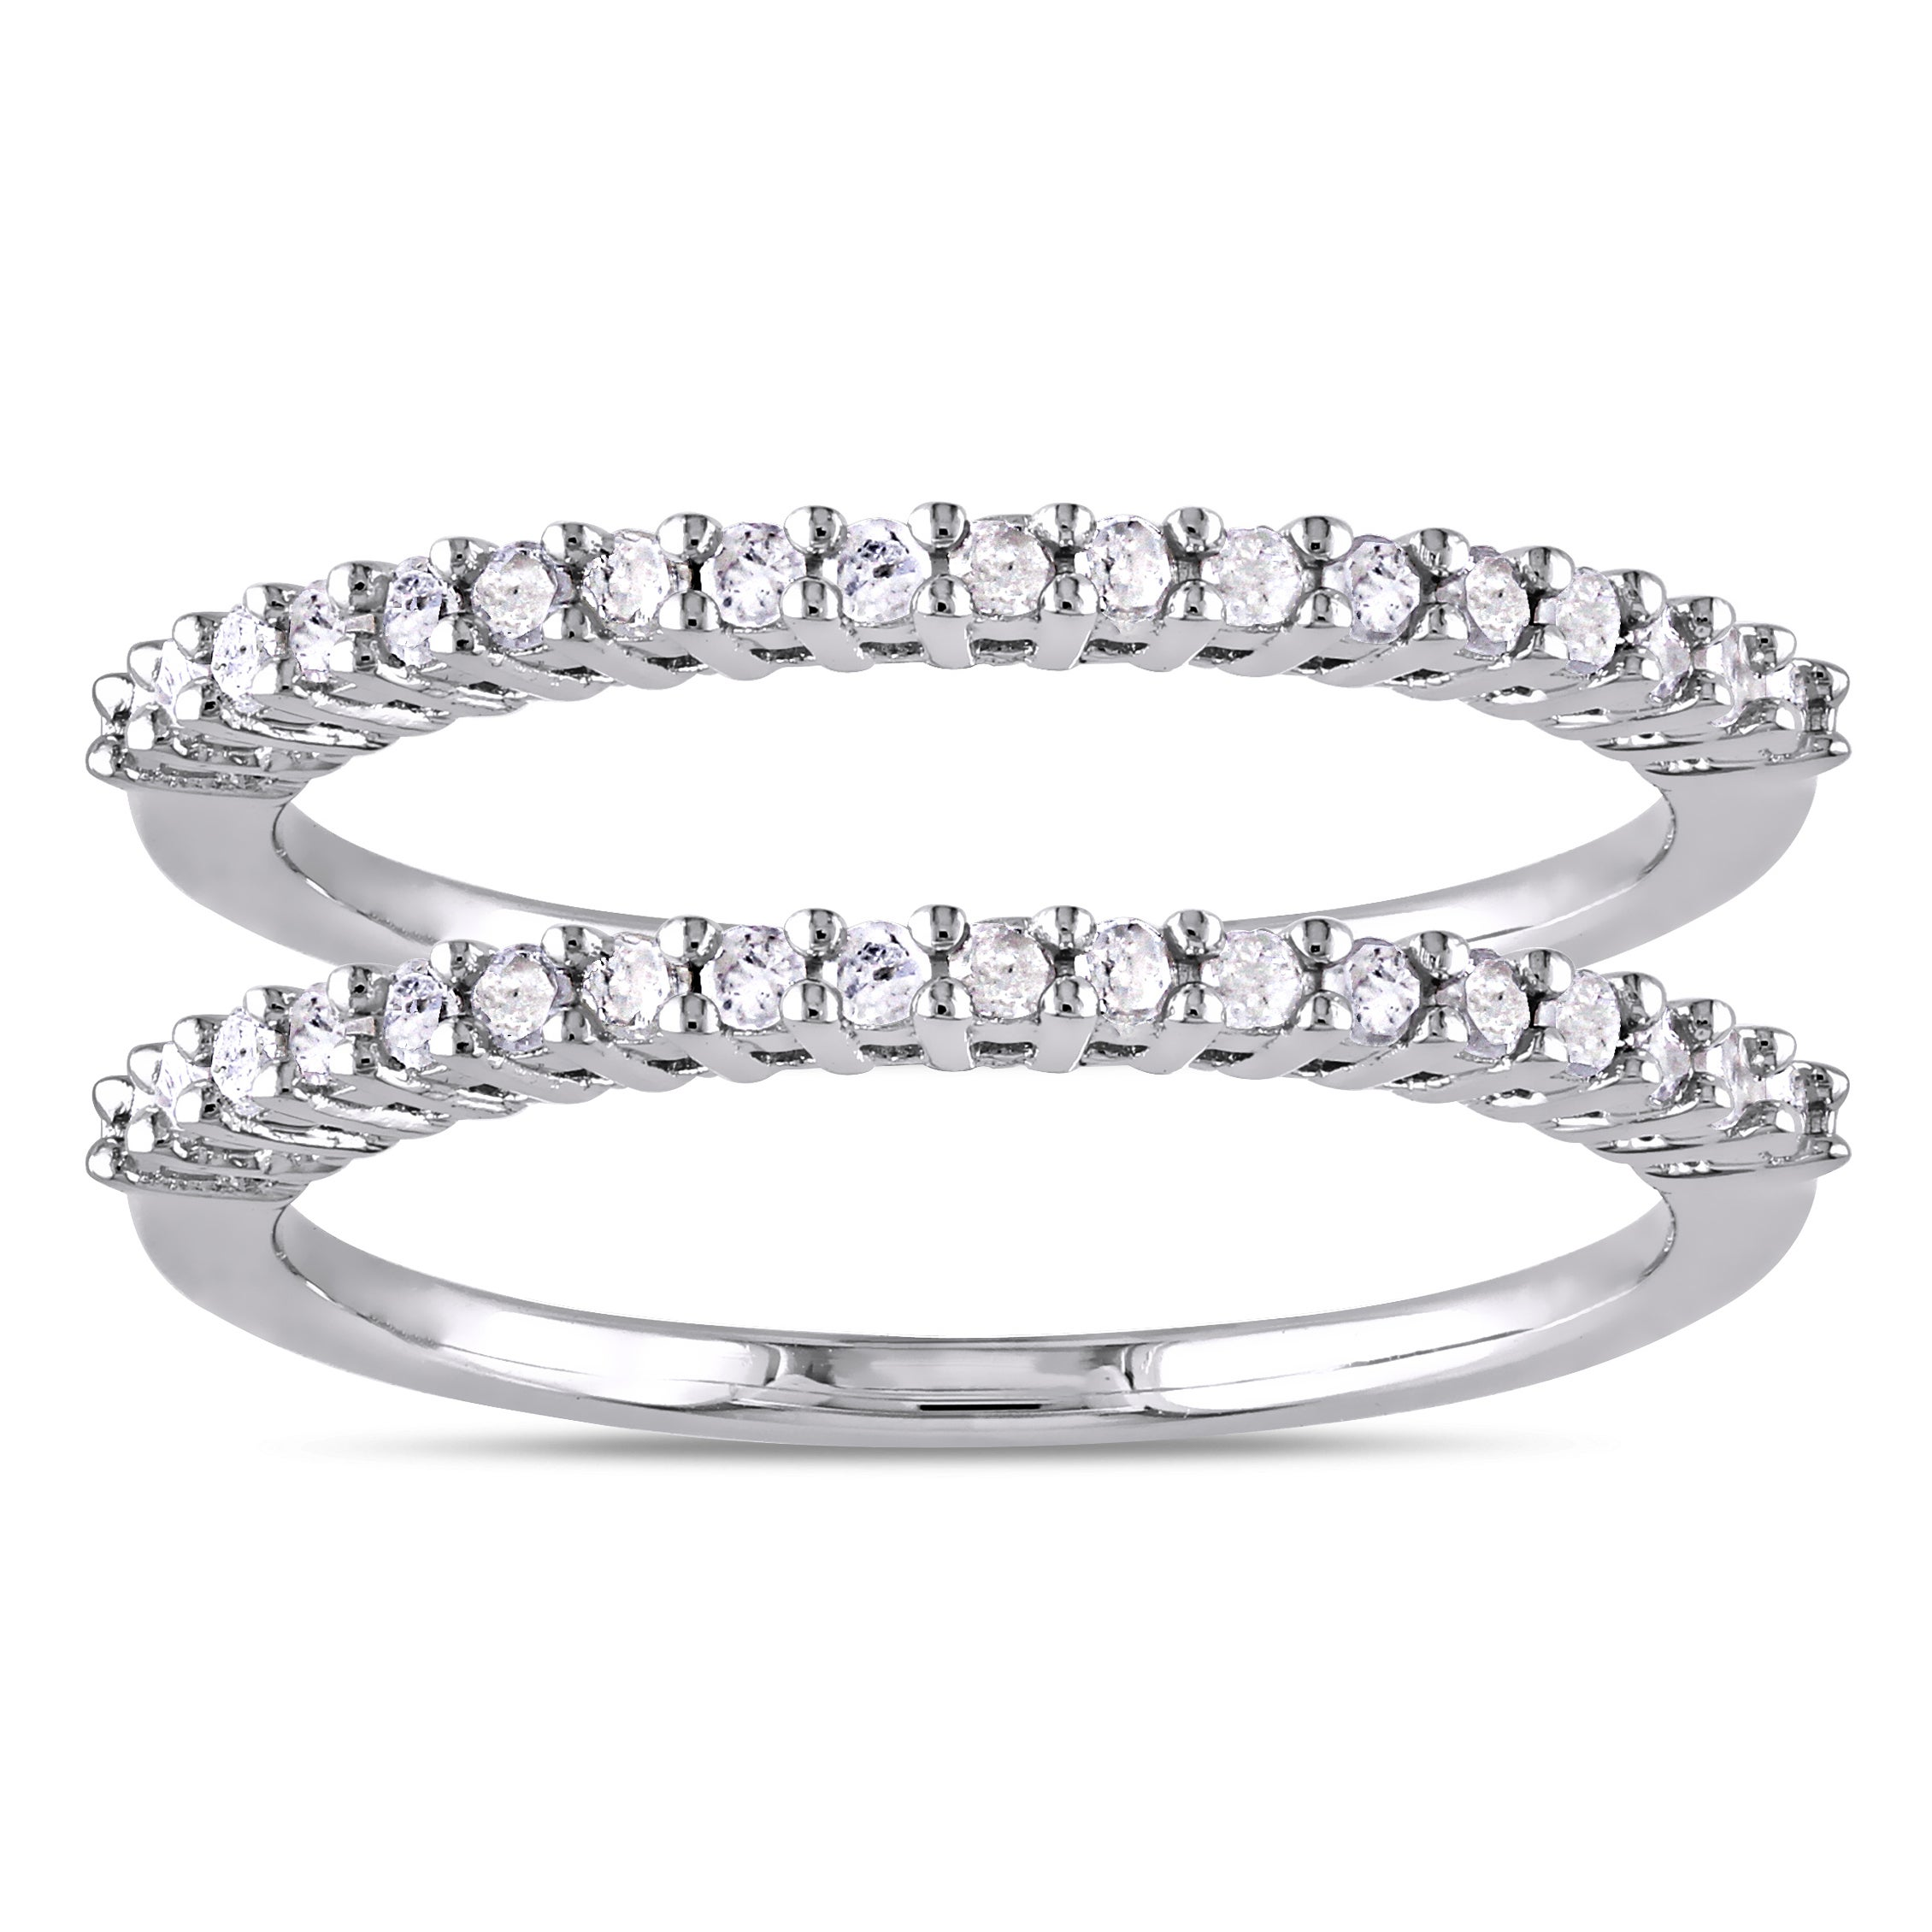 .925 Sterling Silver 3-row Eternity Wedding Band Ring 50% OFF Engagement & Wedding